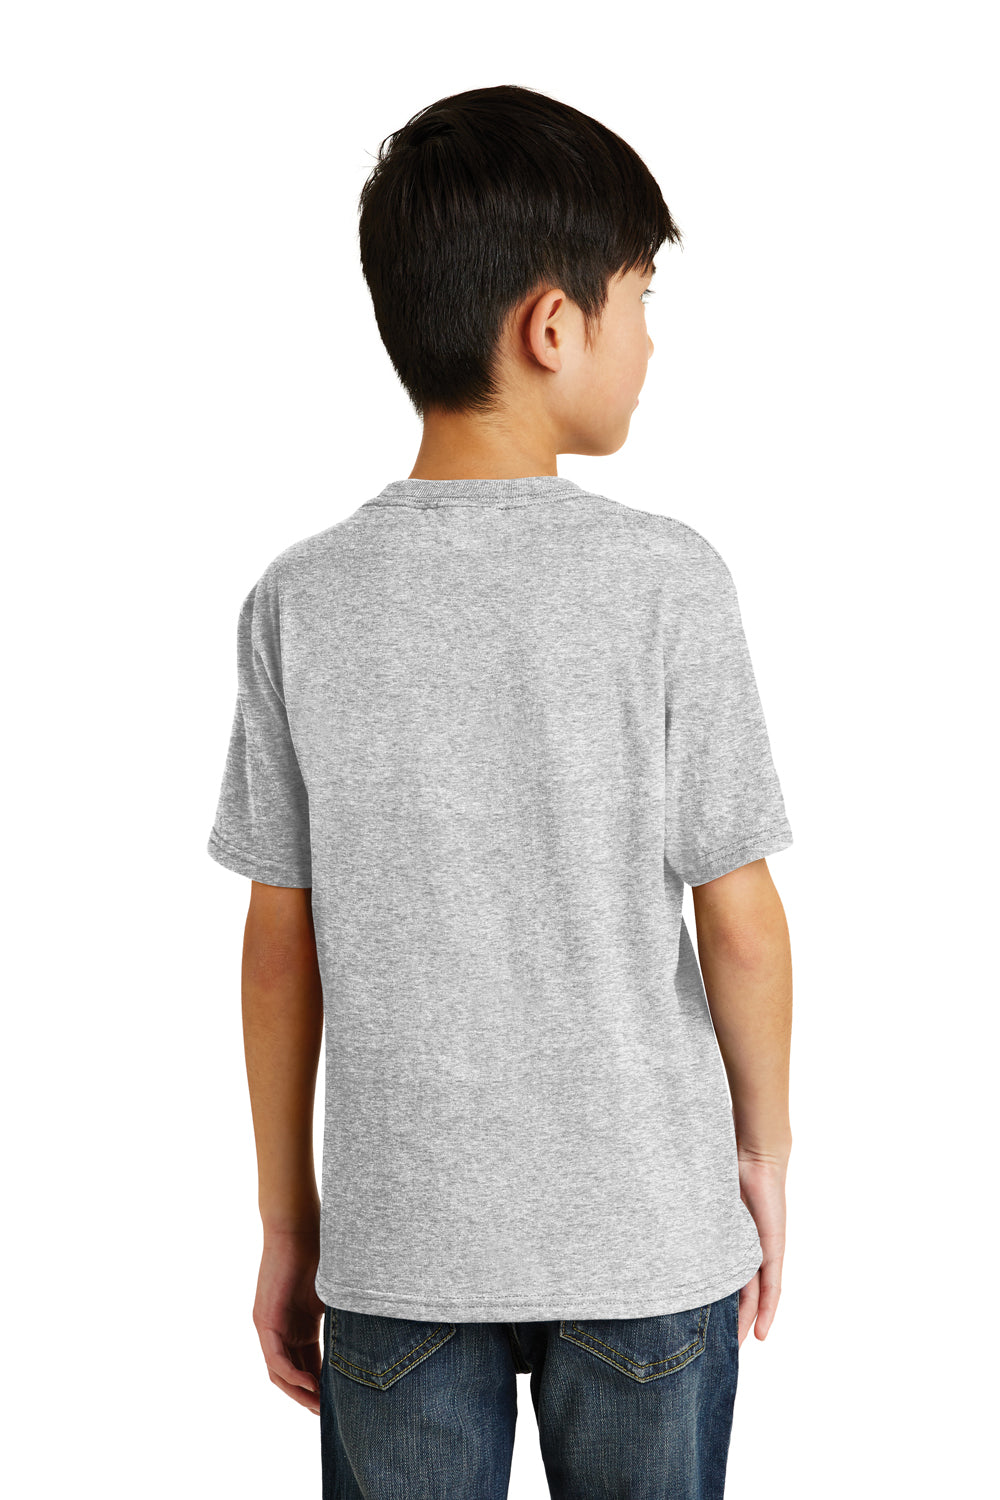 Port & Company PC55Y Youth Core Short Sleeve Crewneck T-Shirt Ash Grey Back